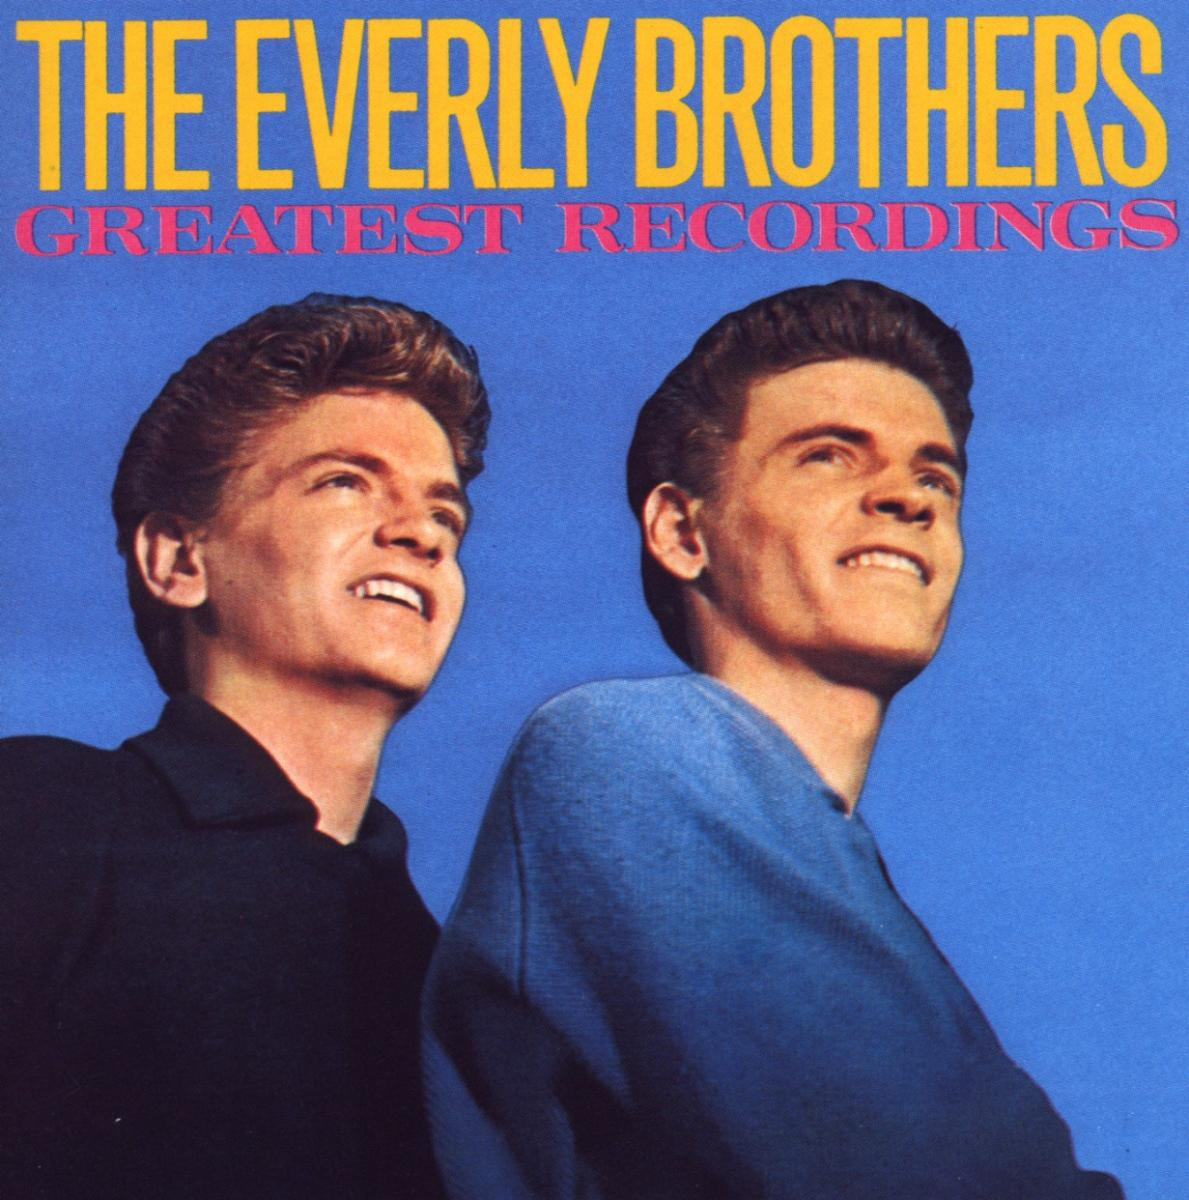 Greatest Recording - Everly Brothers - Musik - ACE - 0029667190329 - June 3, 1986